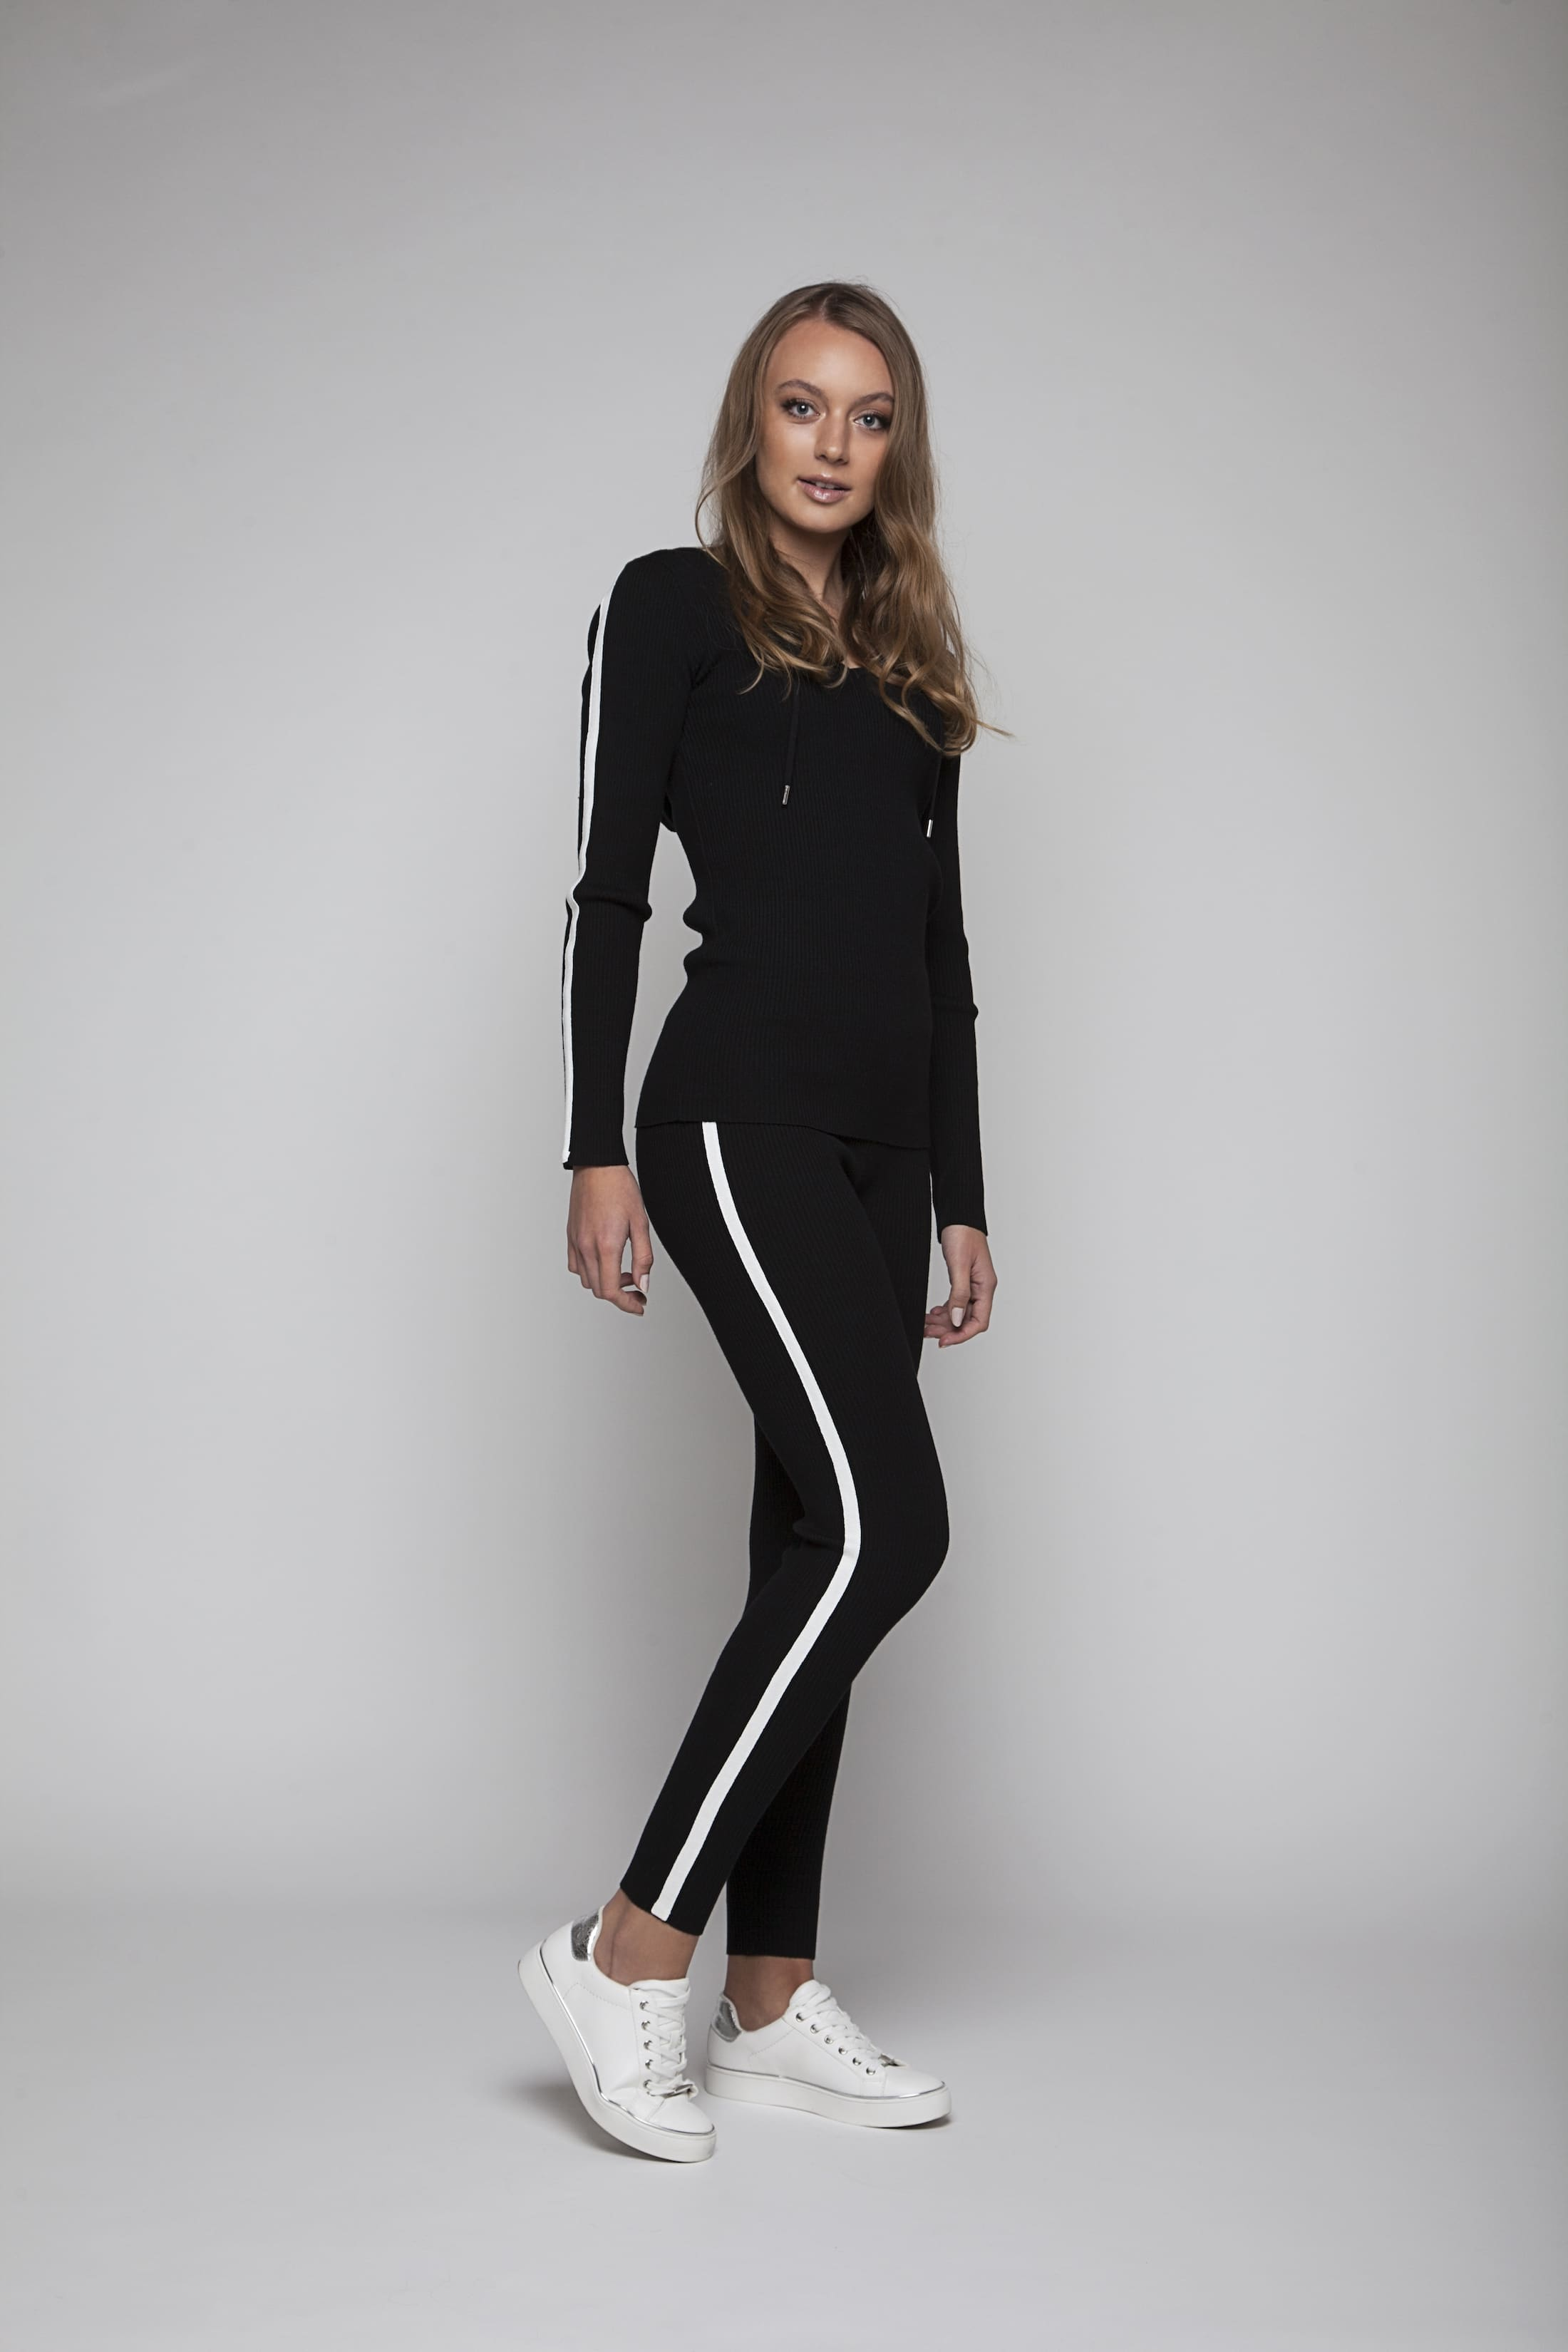 Black loungewear pants with white stripes